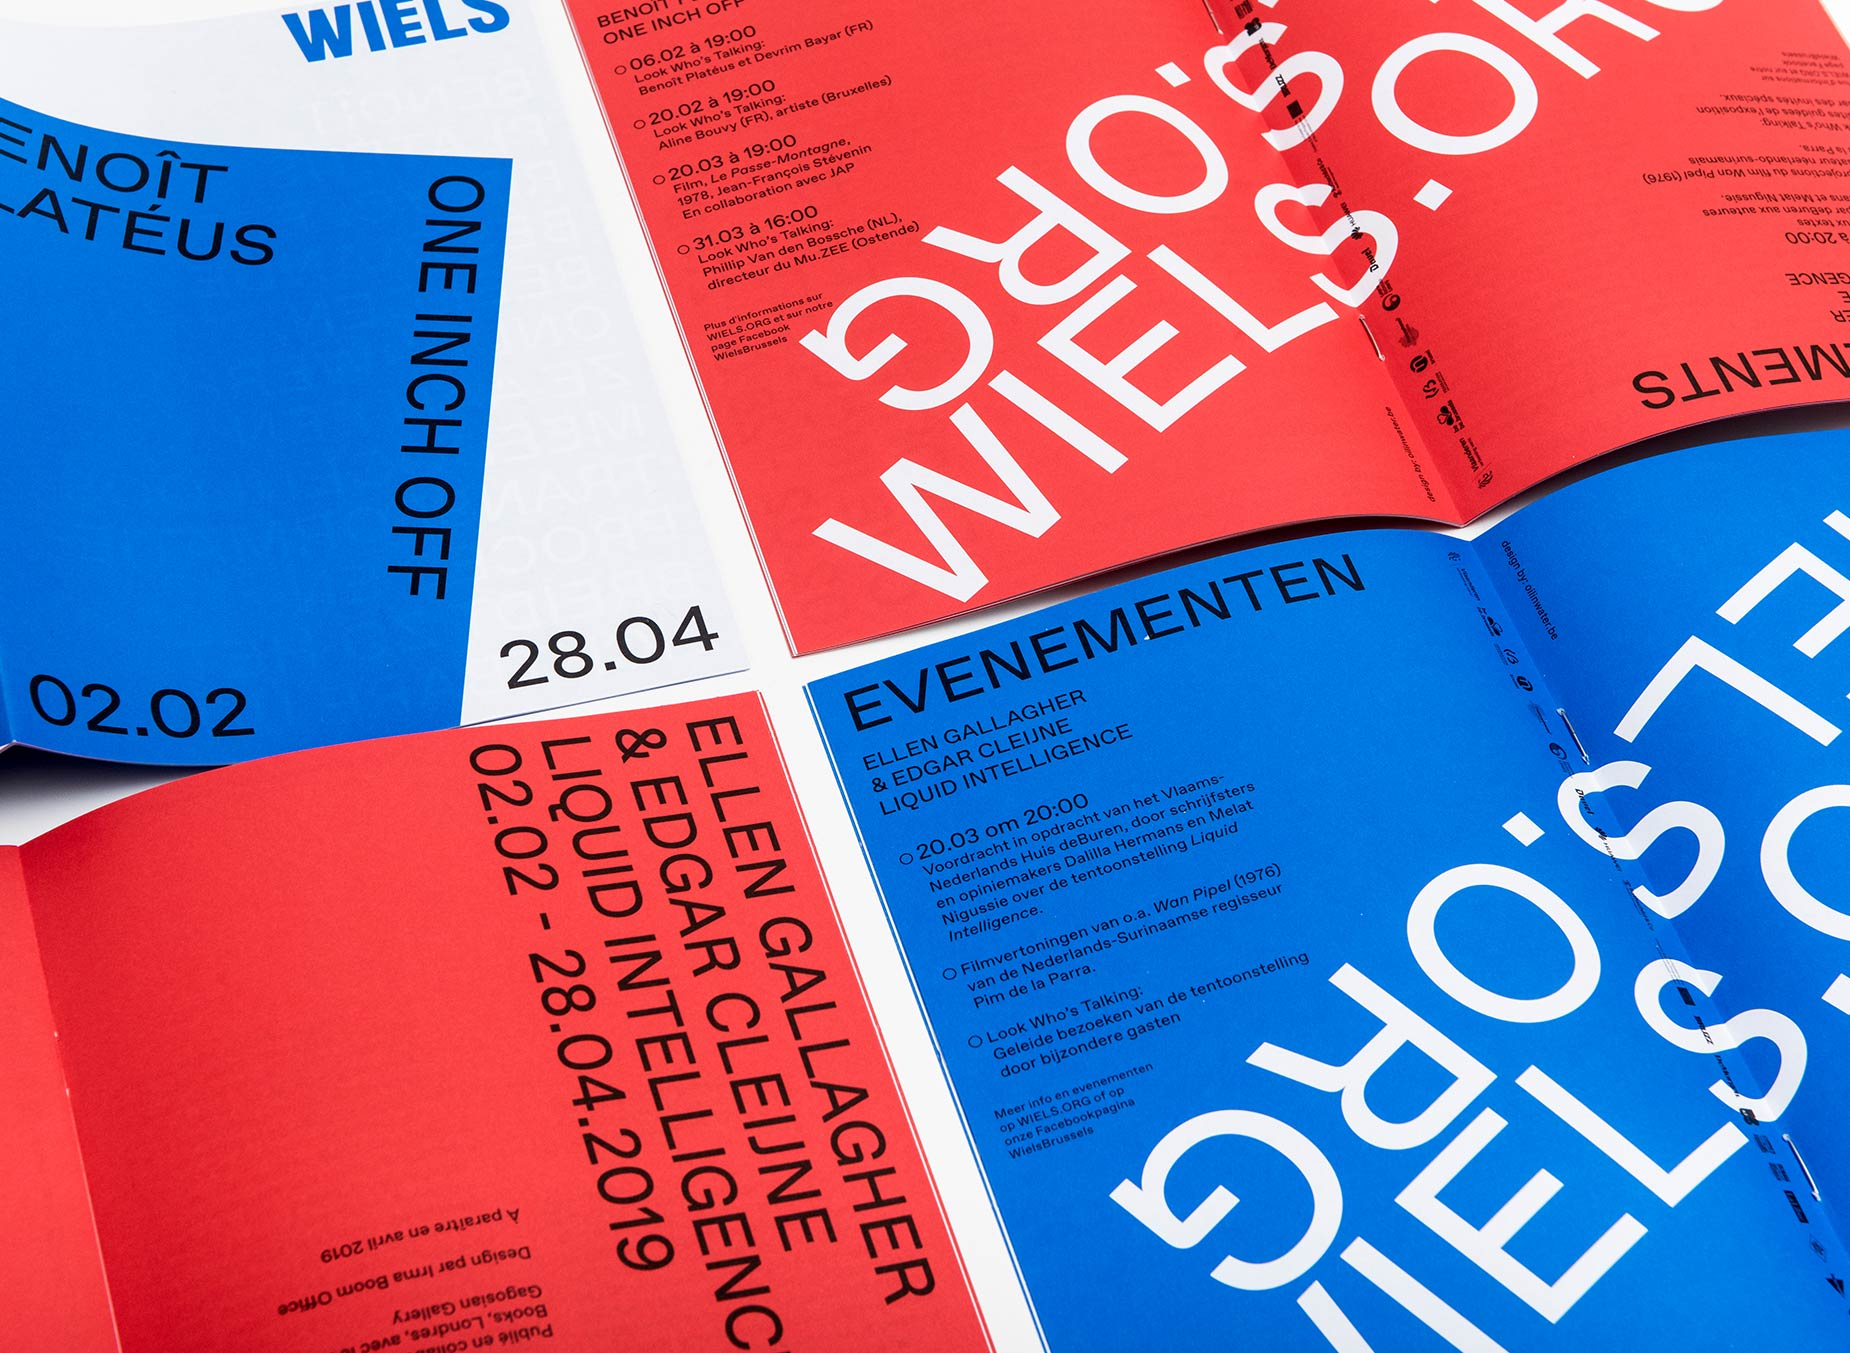 Case: WIELS, Contemporary Art Centre